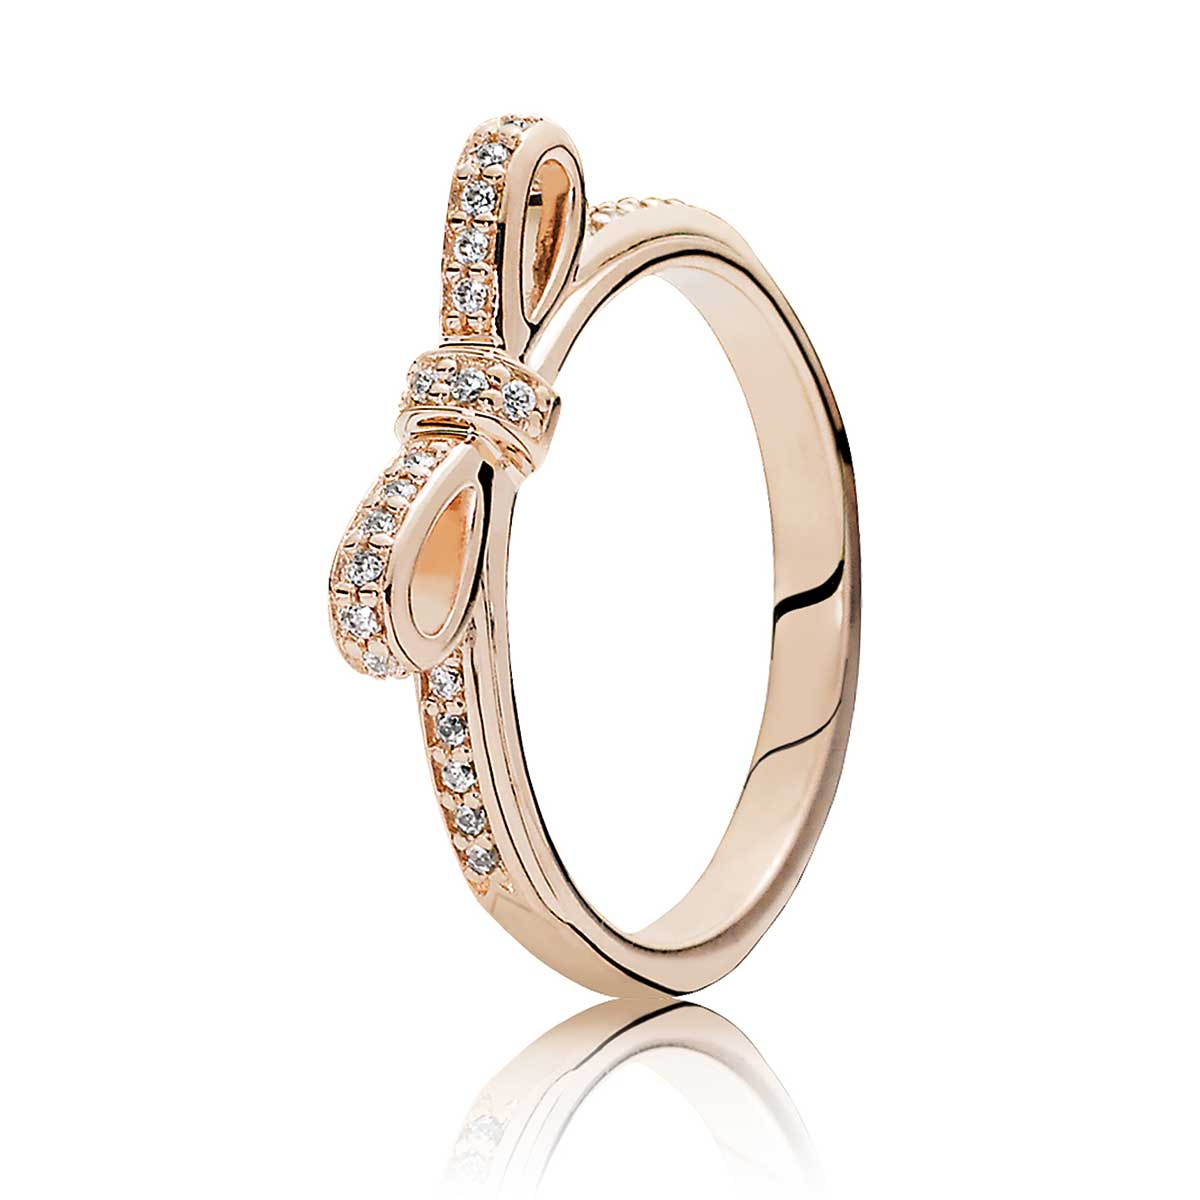 76550cd29 PANDORA Rose™ Sparkling Bow Ring: Precious Accents, Ltd.